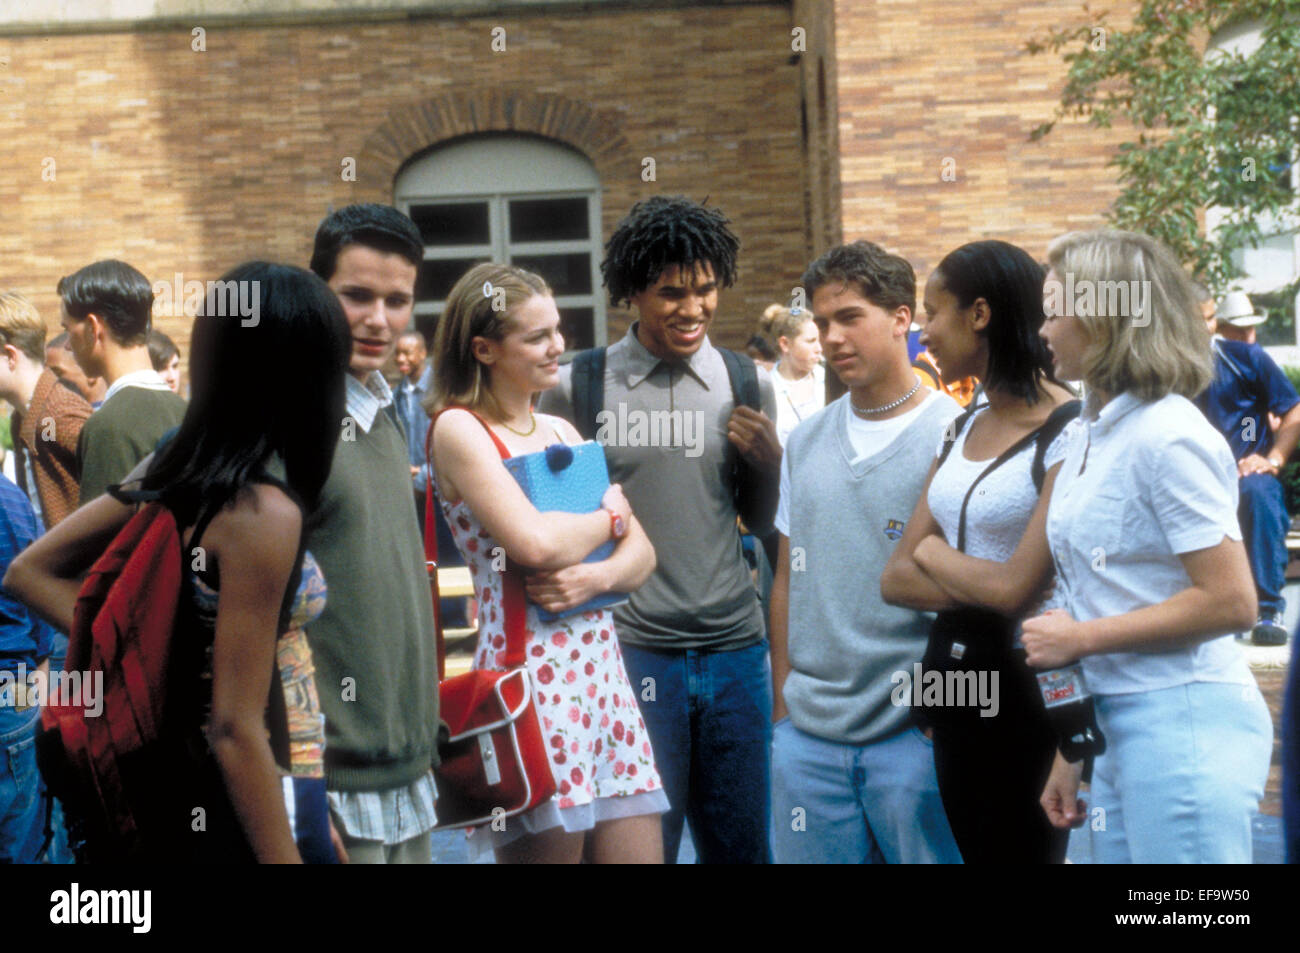 10 Things I Hate About You 1999: LARISA OLEYNIK 10 THINGS I HATE ABOUT YOU (1999 Stock